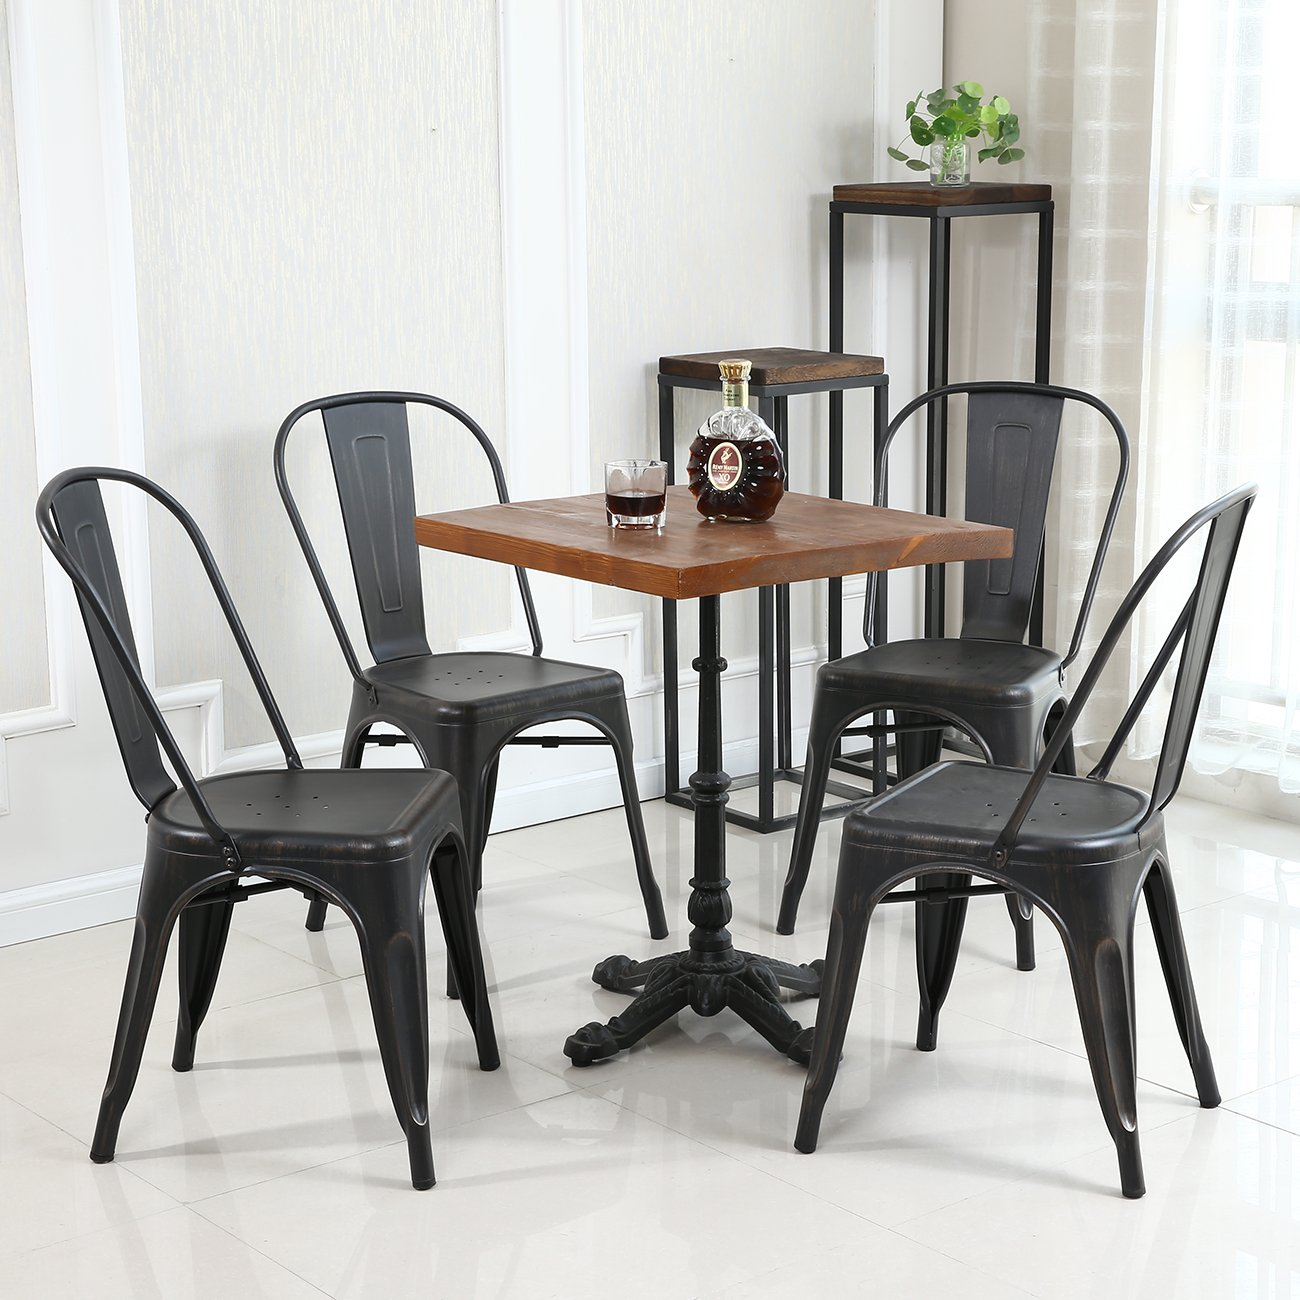 Amazoncom Belleze Set of 4 Metal Chairs Side Dining Steel High